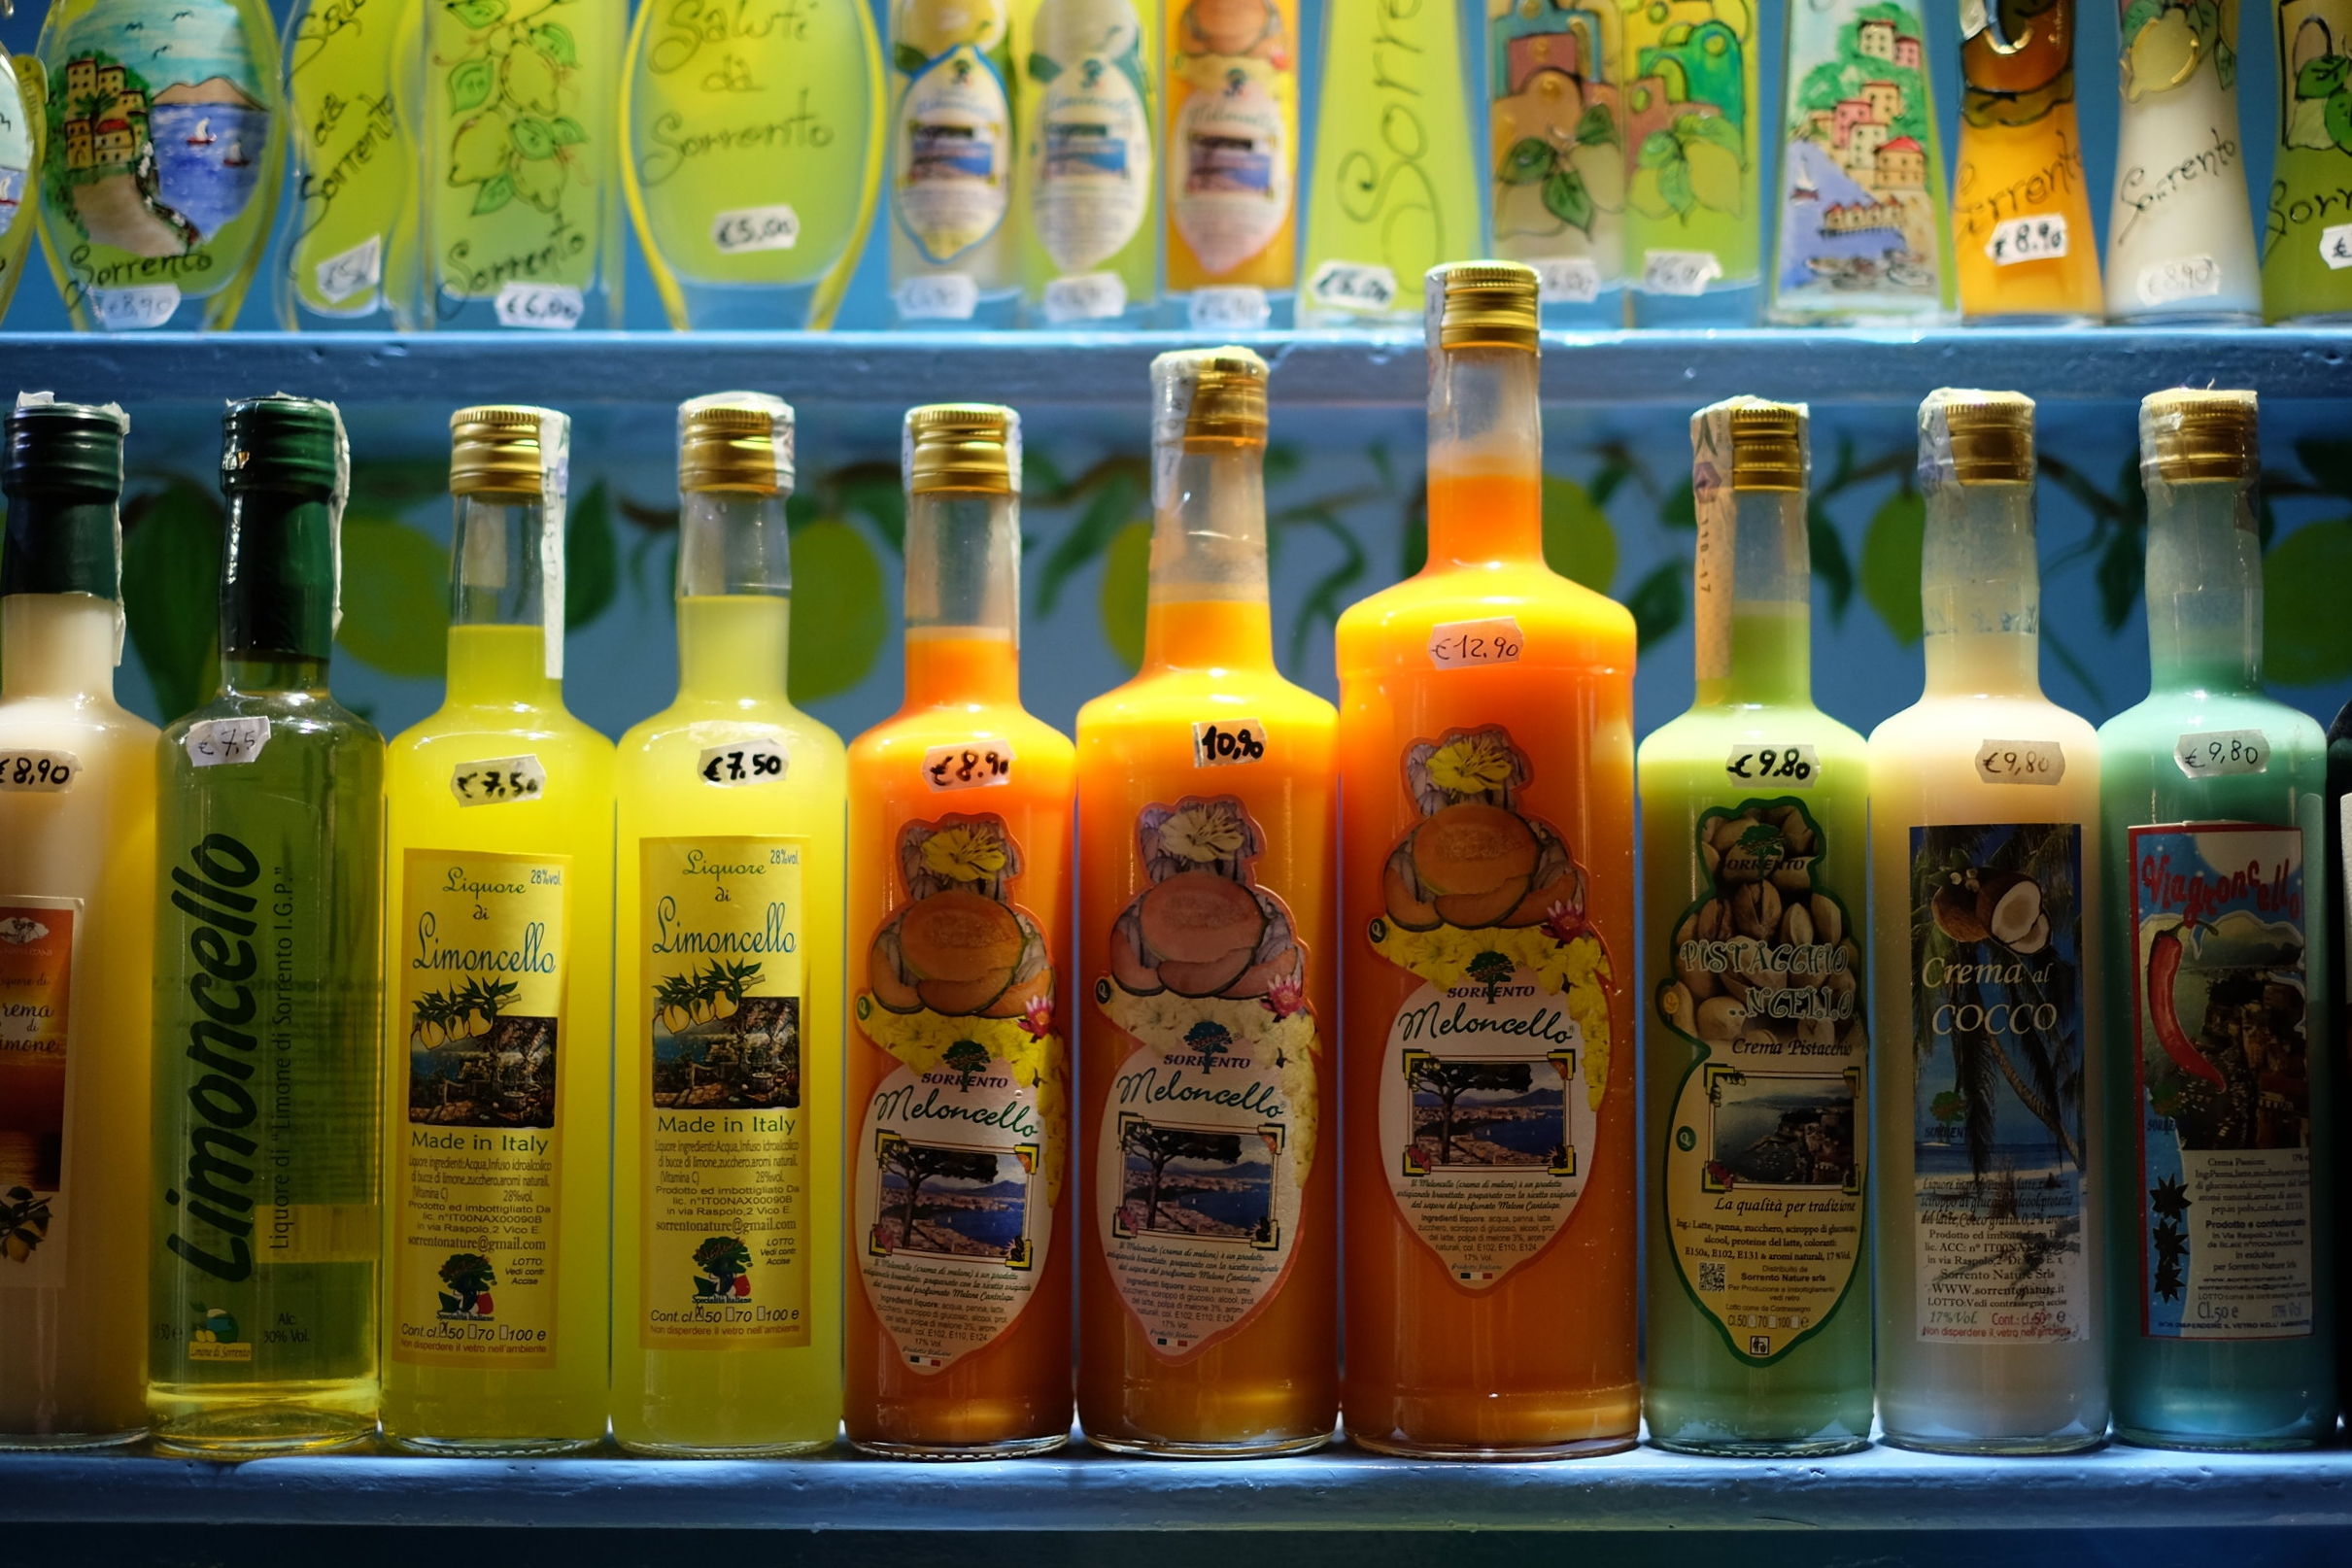 The many different types of local liquers, made from lemon, melon, coconut and pistachio.